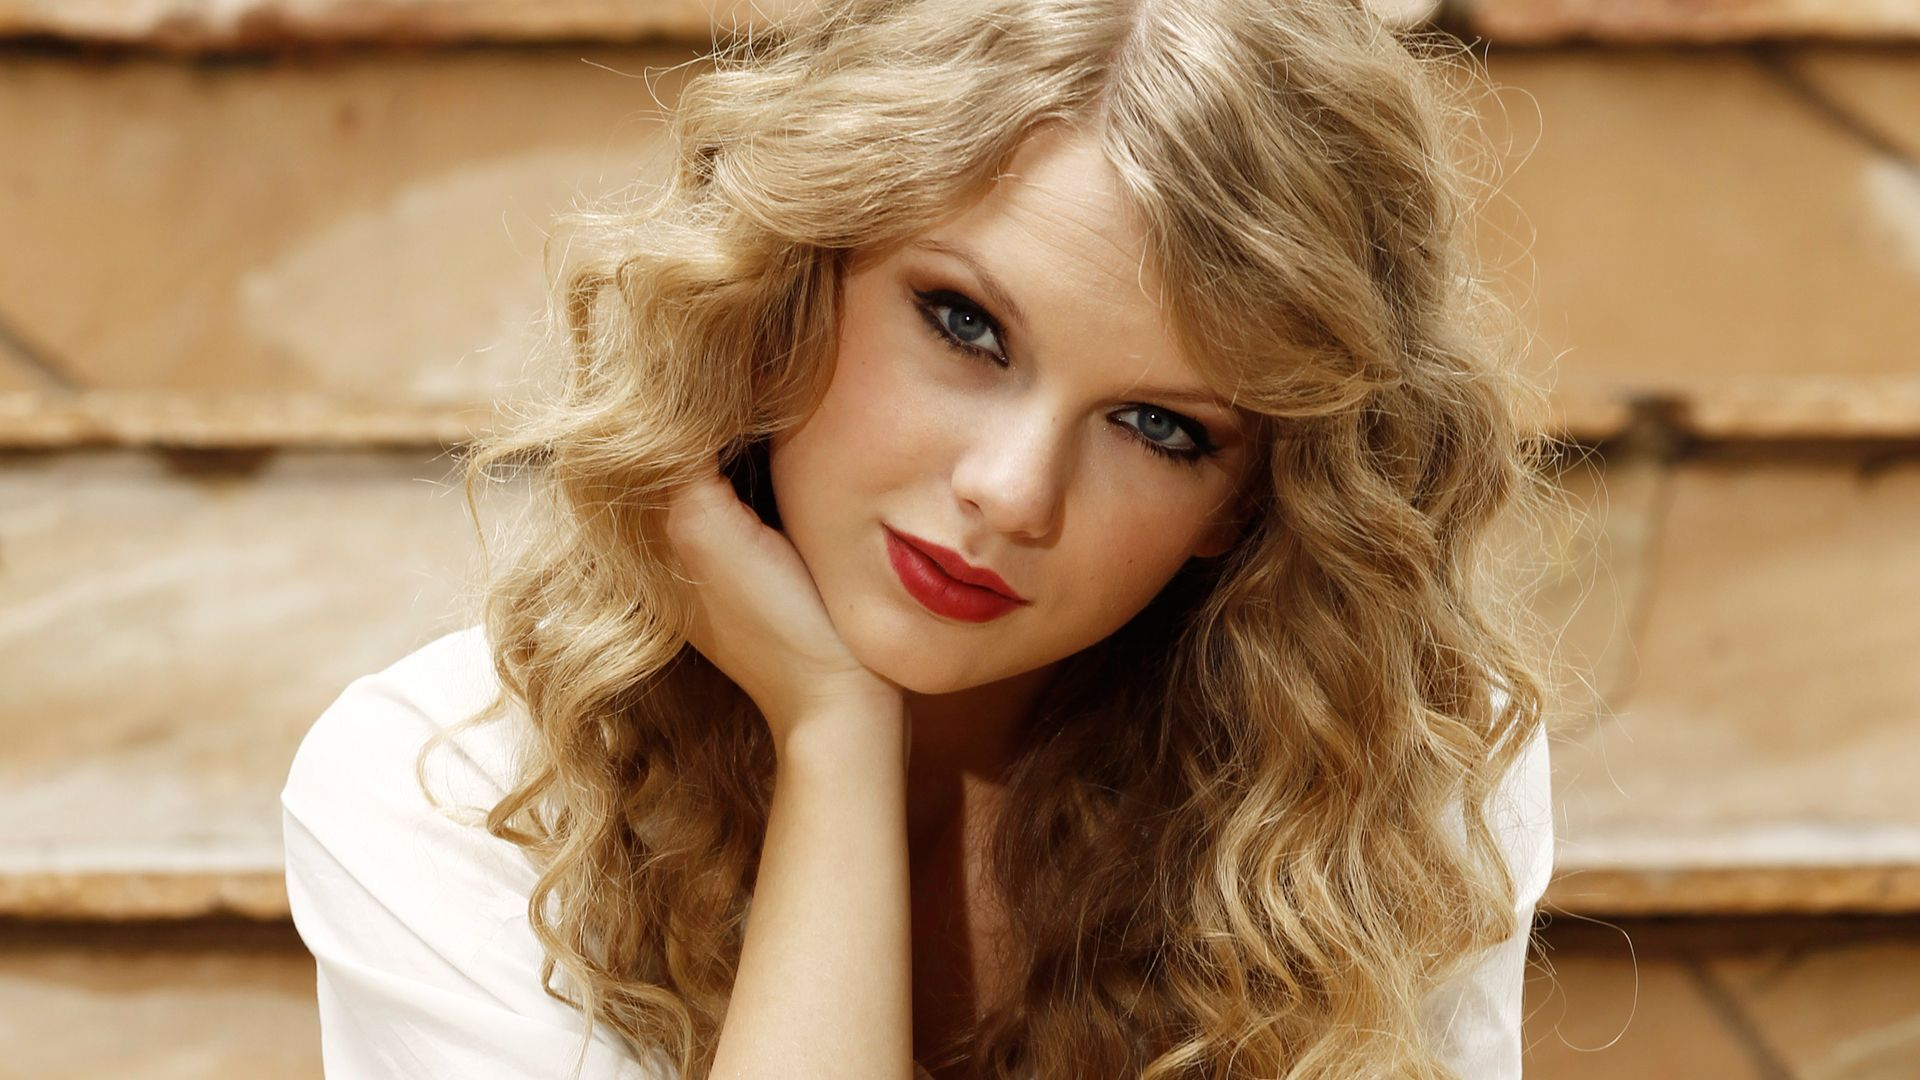 Download Taylor Swift Lovely Eye Look Still Mobile Background Free Hd Photos